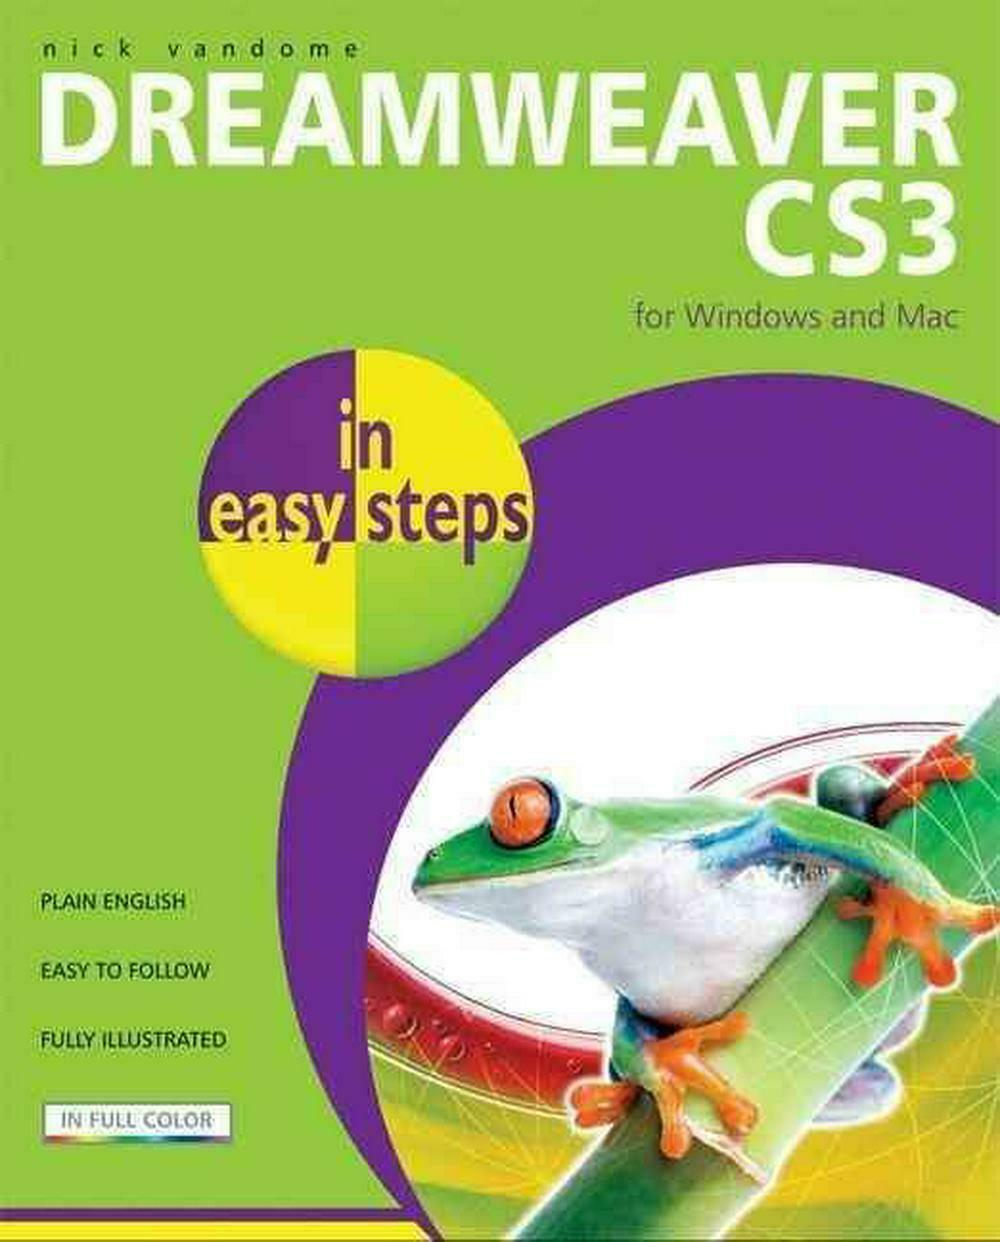 Dreamweaver CS3 in Easy Steps by Nick Vandome (English) Paperback Book Free Ship |